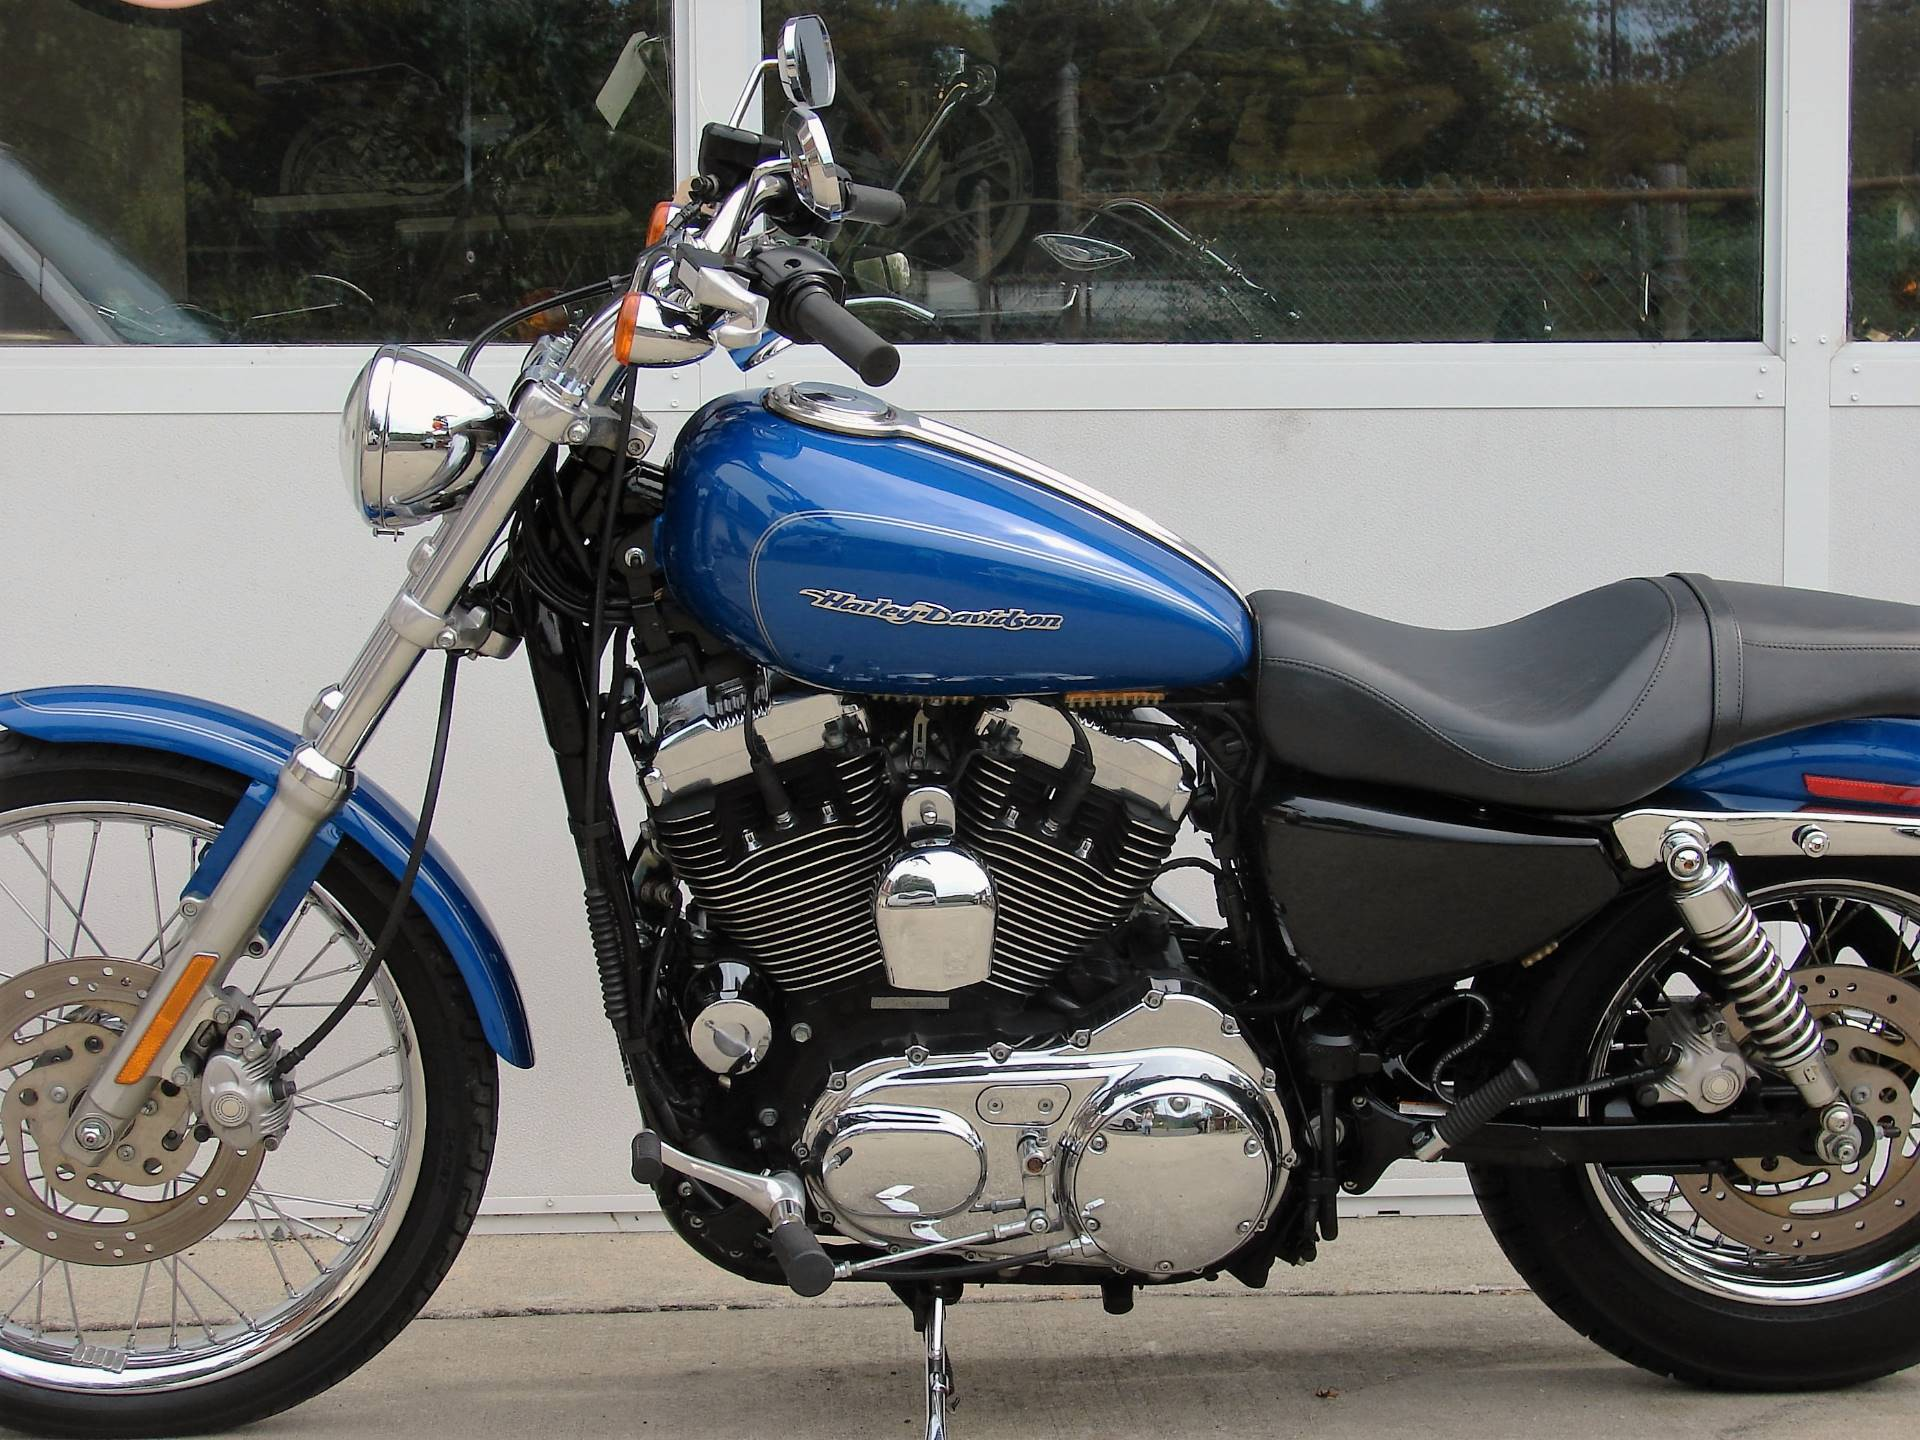 2007 Harley-Davidson XL 1200cc Sportster  (Blue w/ Silver Pinstripe) in Williamstown, New Jersey